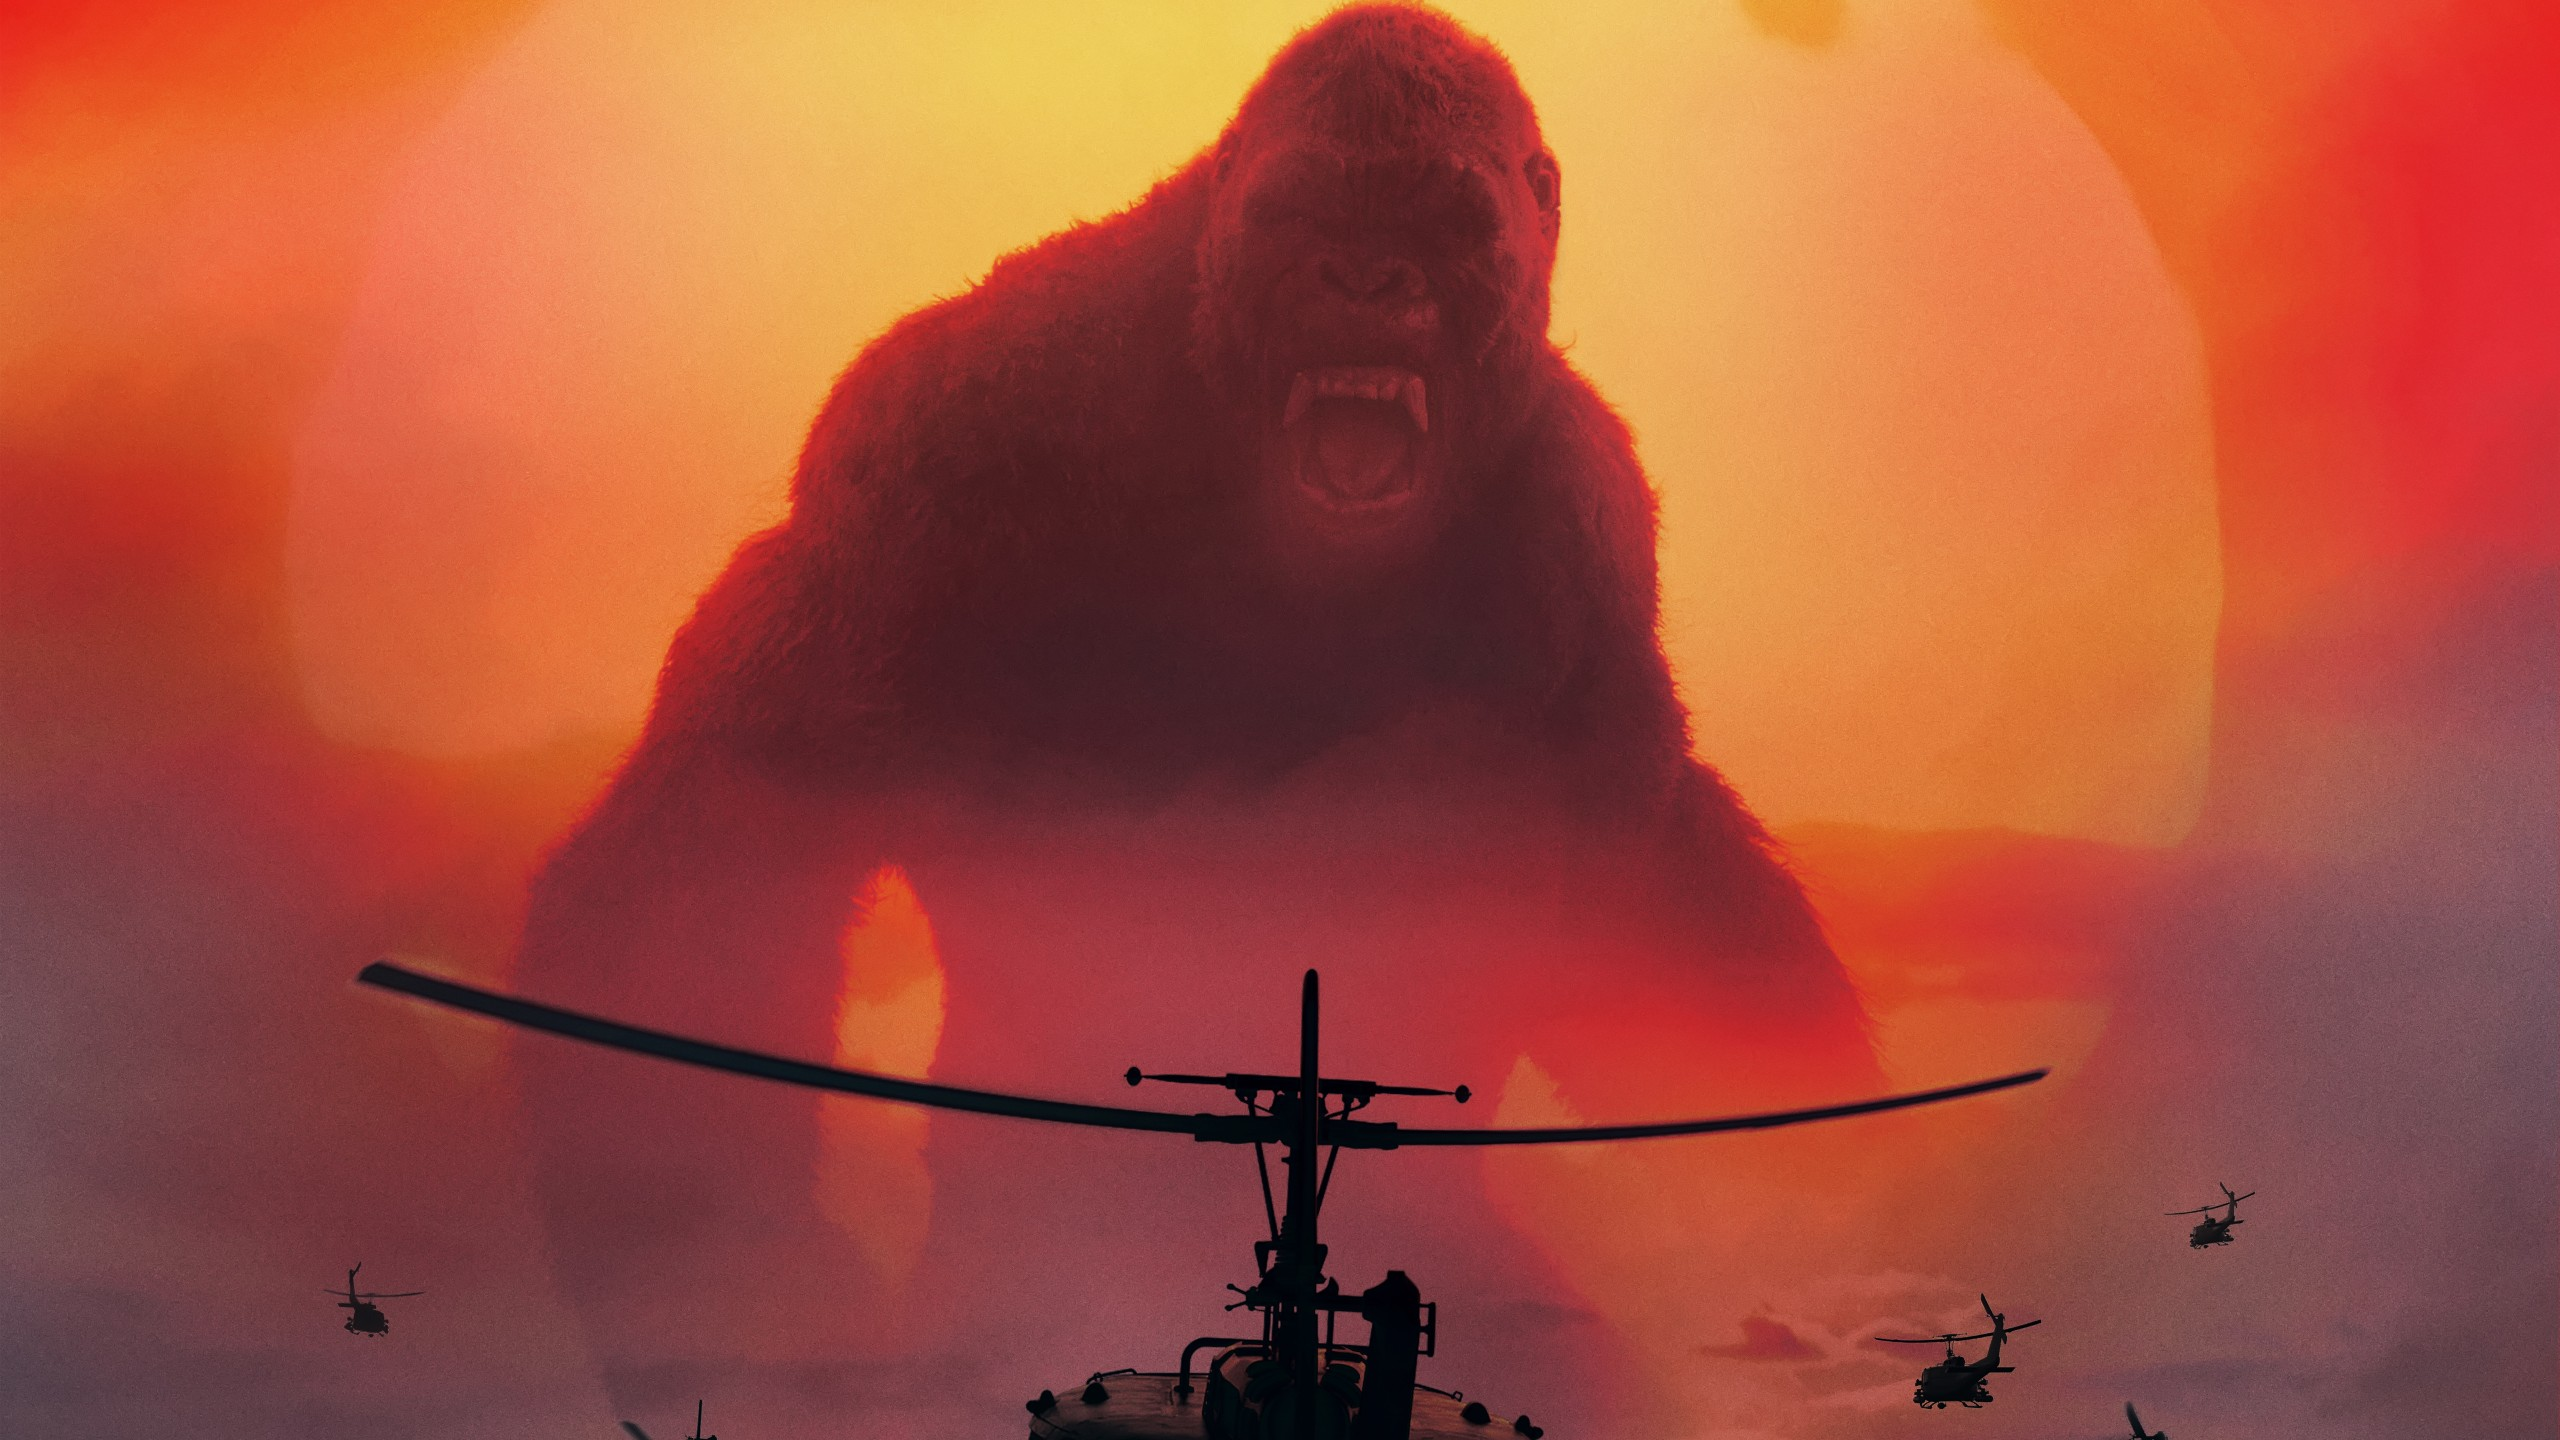 Wallpaper Skull 3d Kong Skull Island 2017 Movie 4k Wallpapers Hd Wallpapers